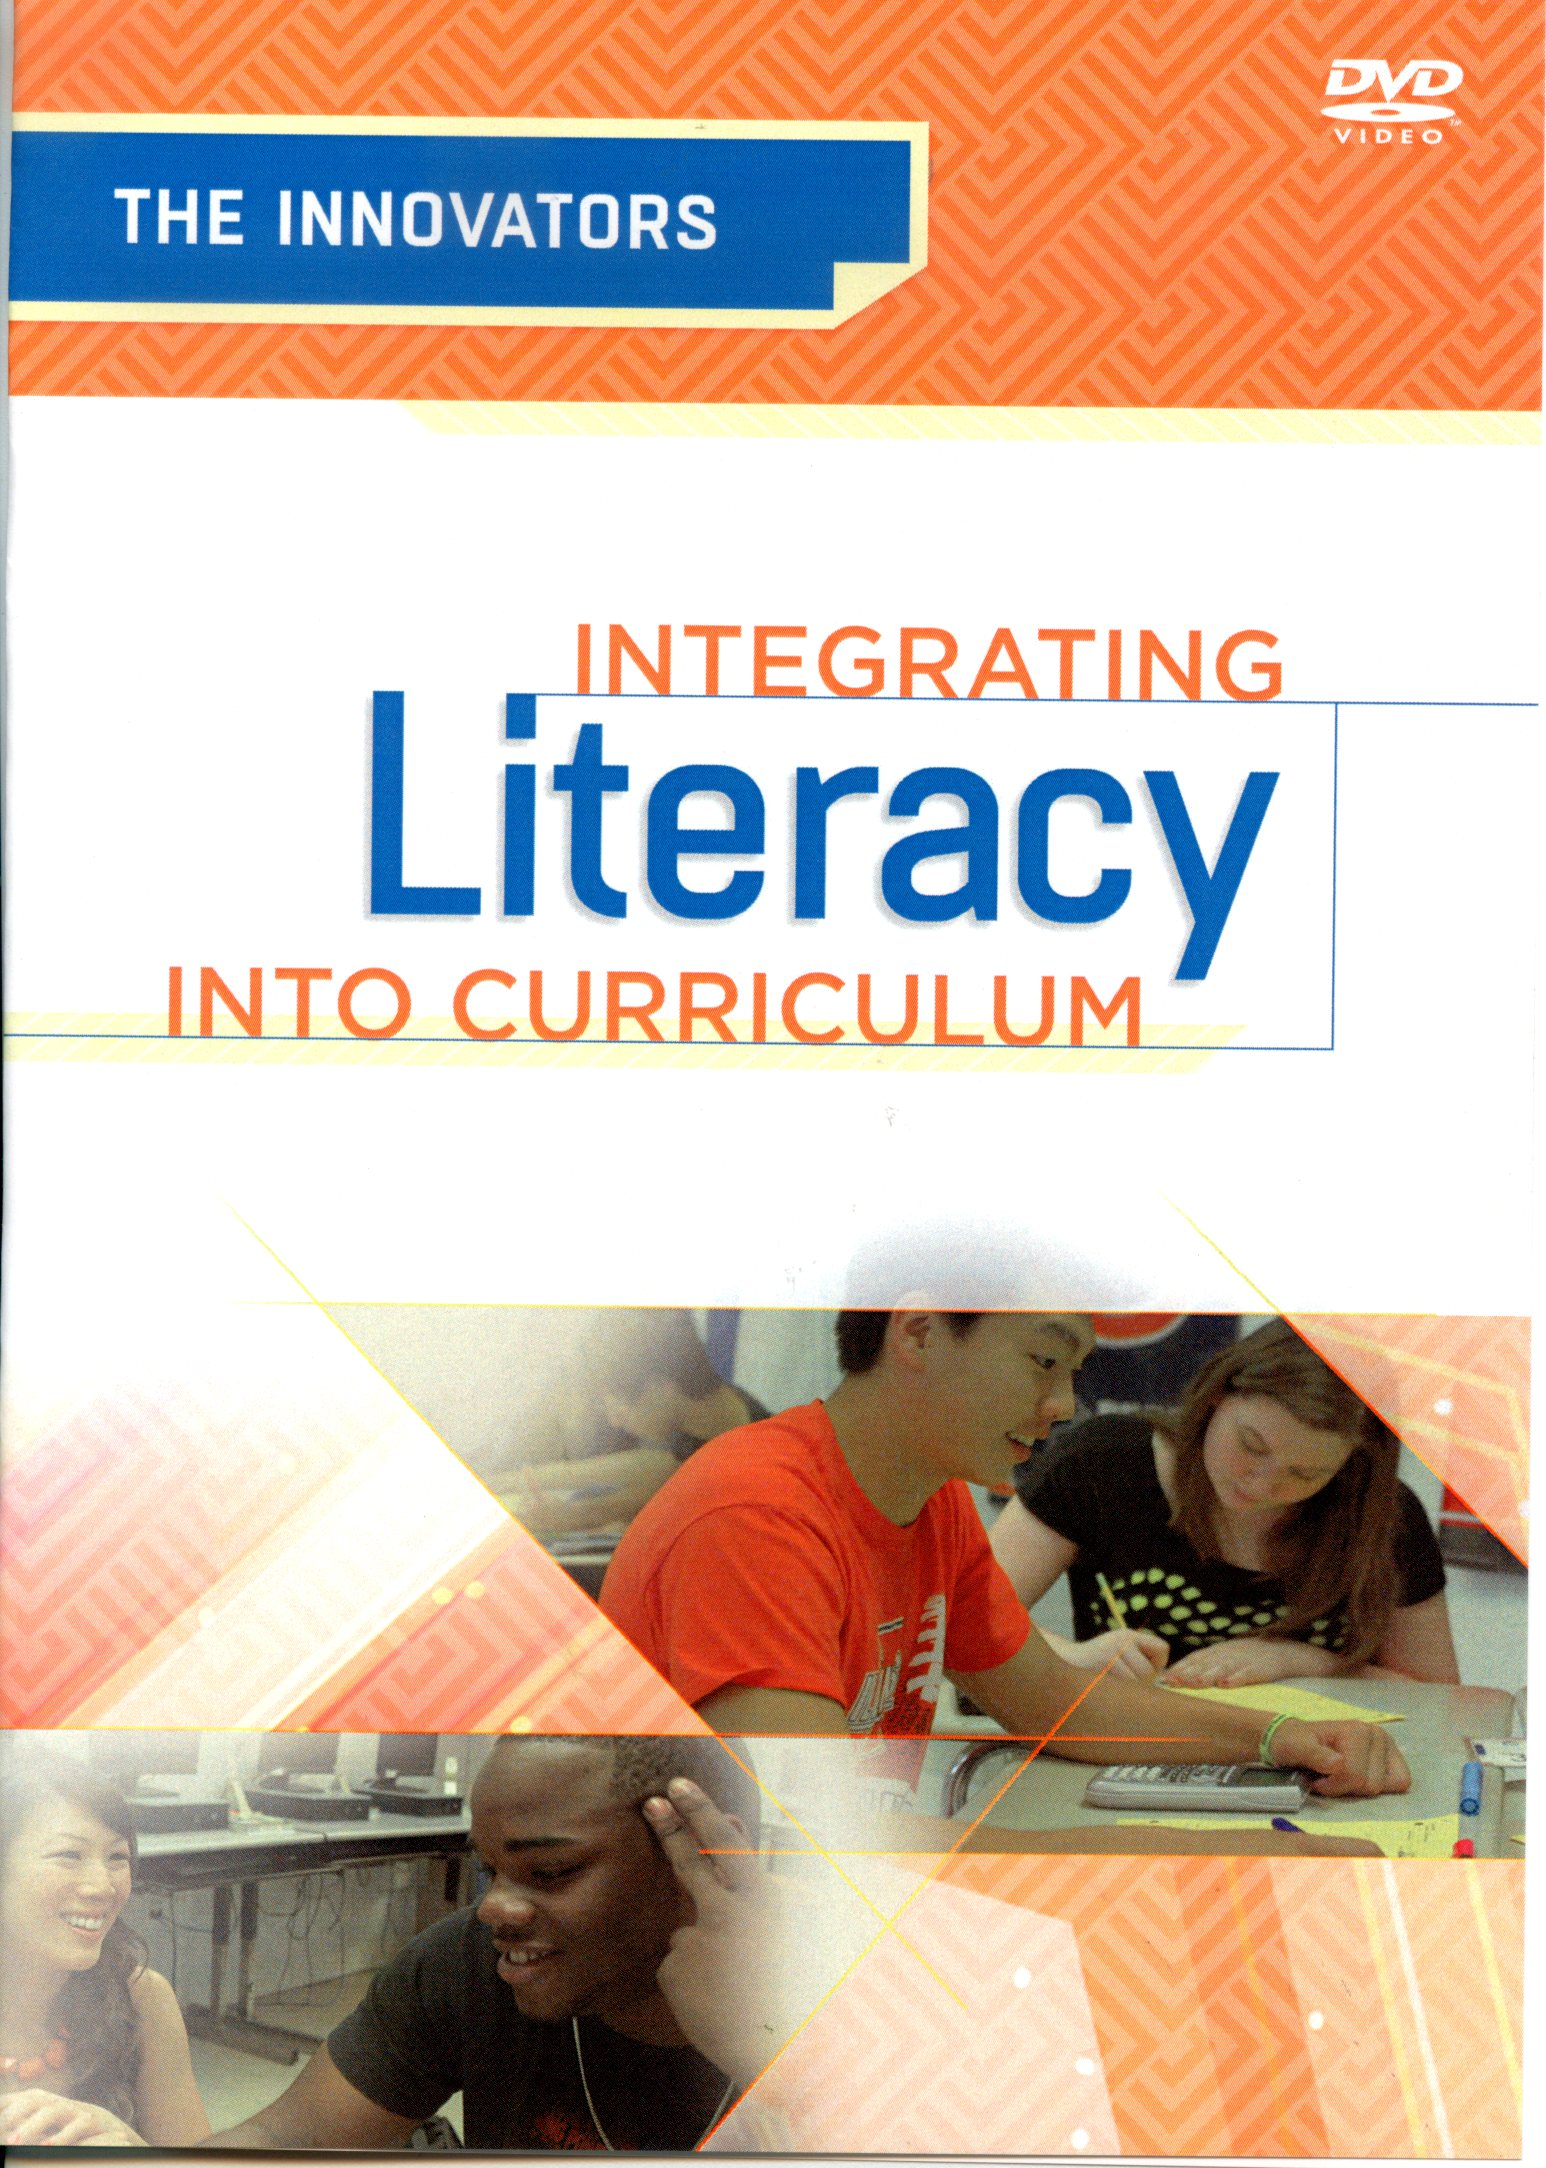 Integrating literacy into curriculum